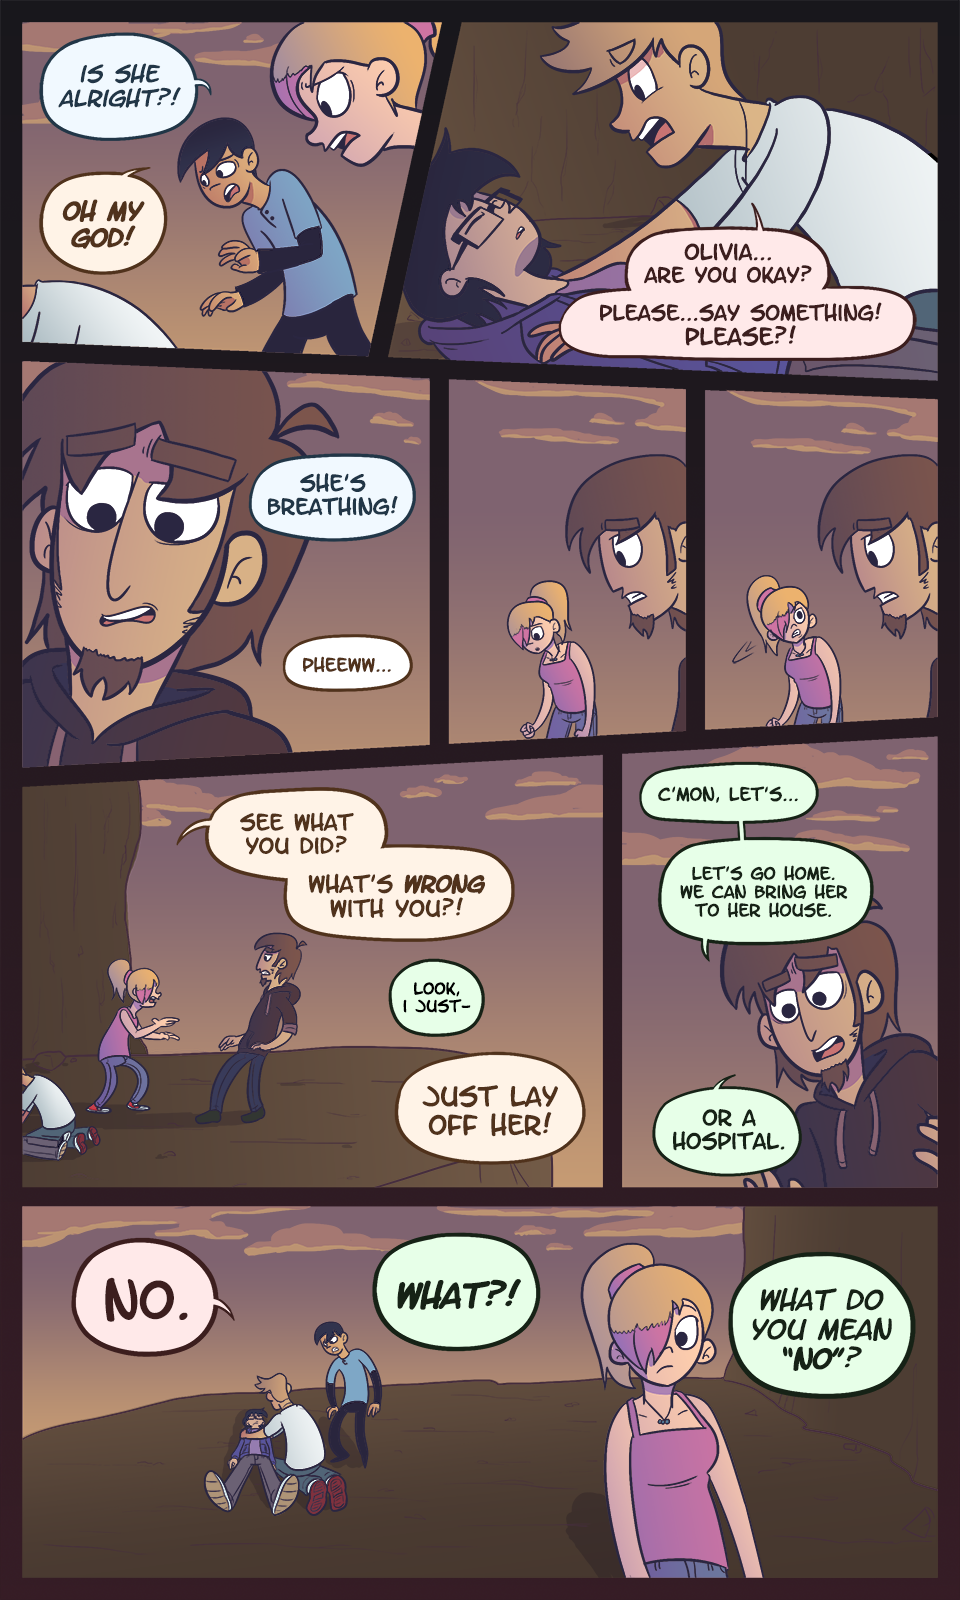 Page 326: What You Did